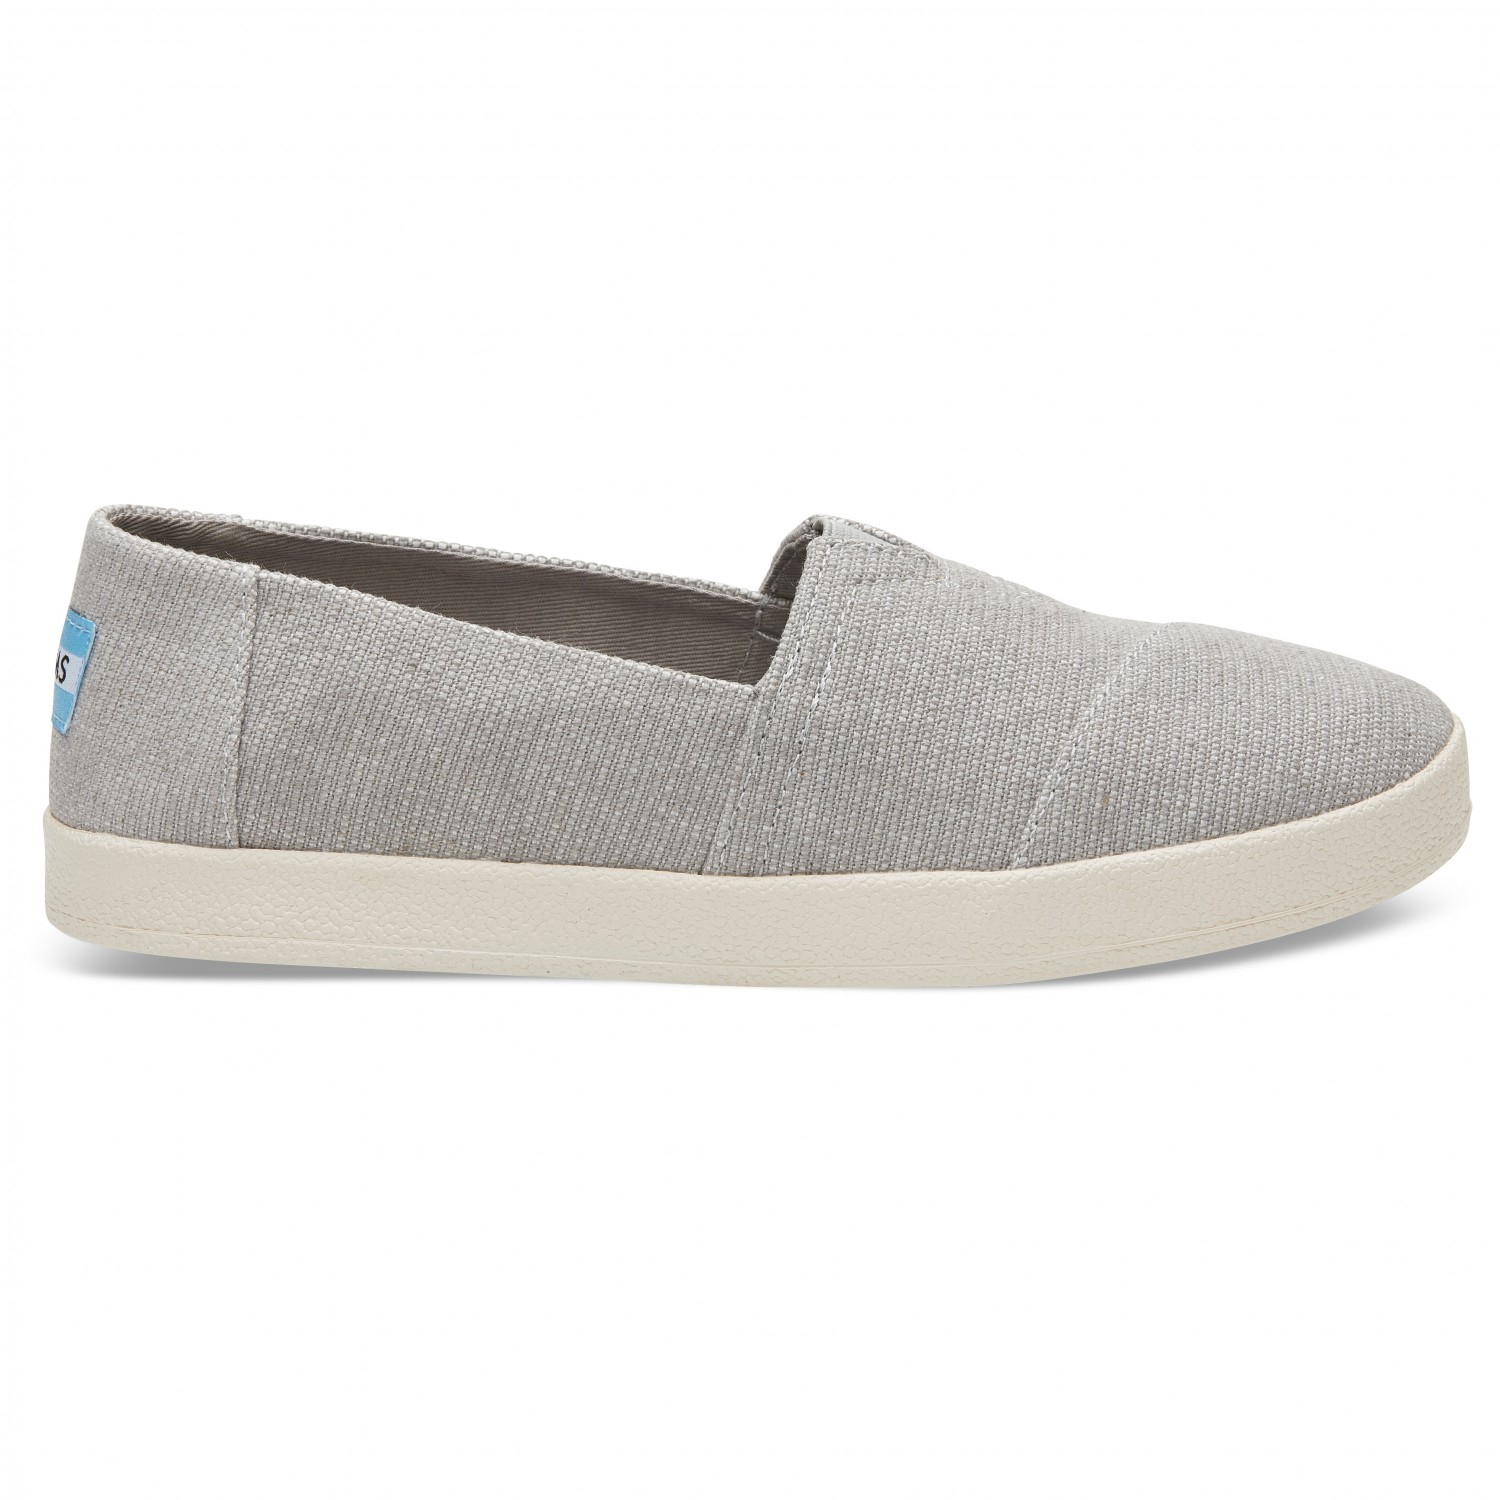 beste website geweldige specials uitstekende kwaliteit TOMS - Women's Avalon Slip-On - Sneakers - Black Coated Canvas | 6 (US)